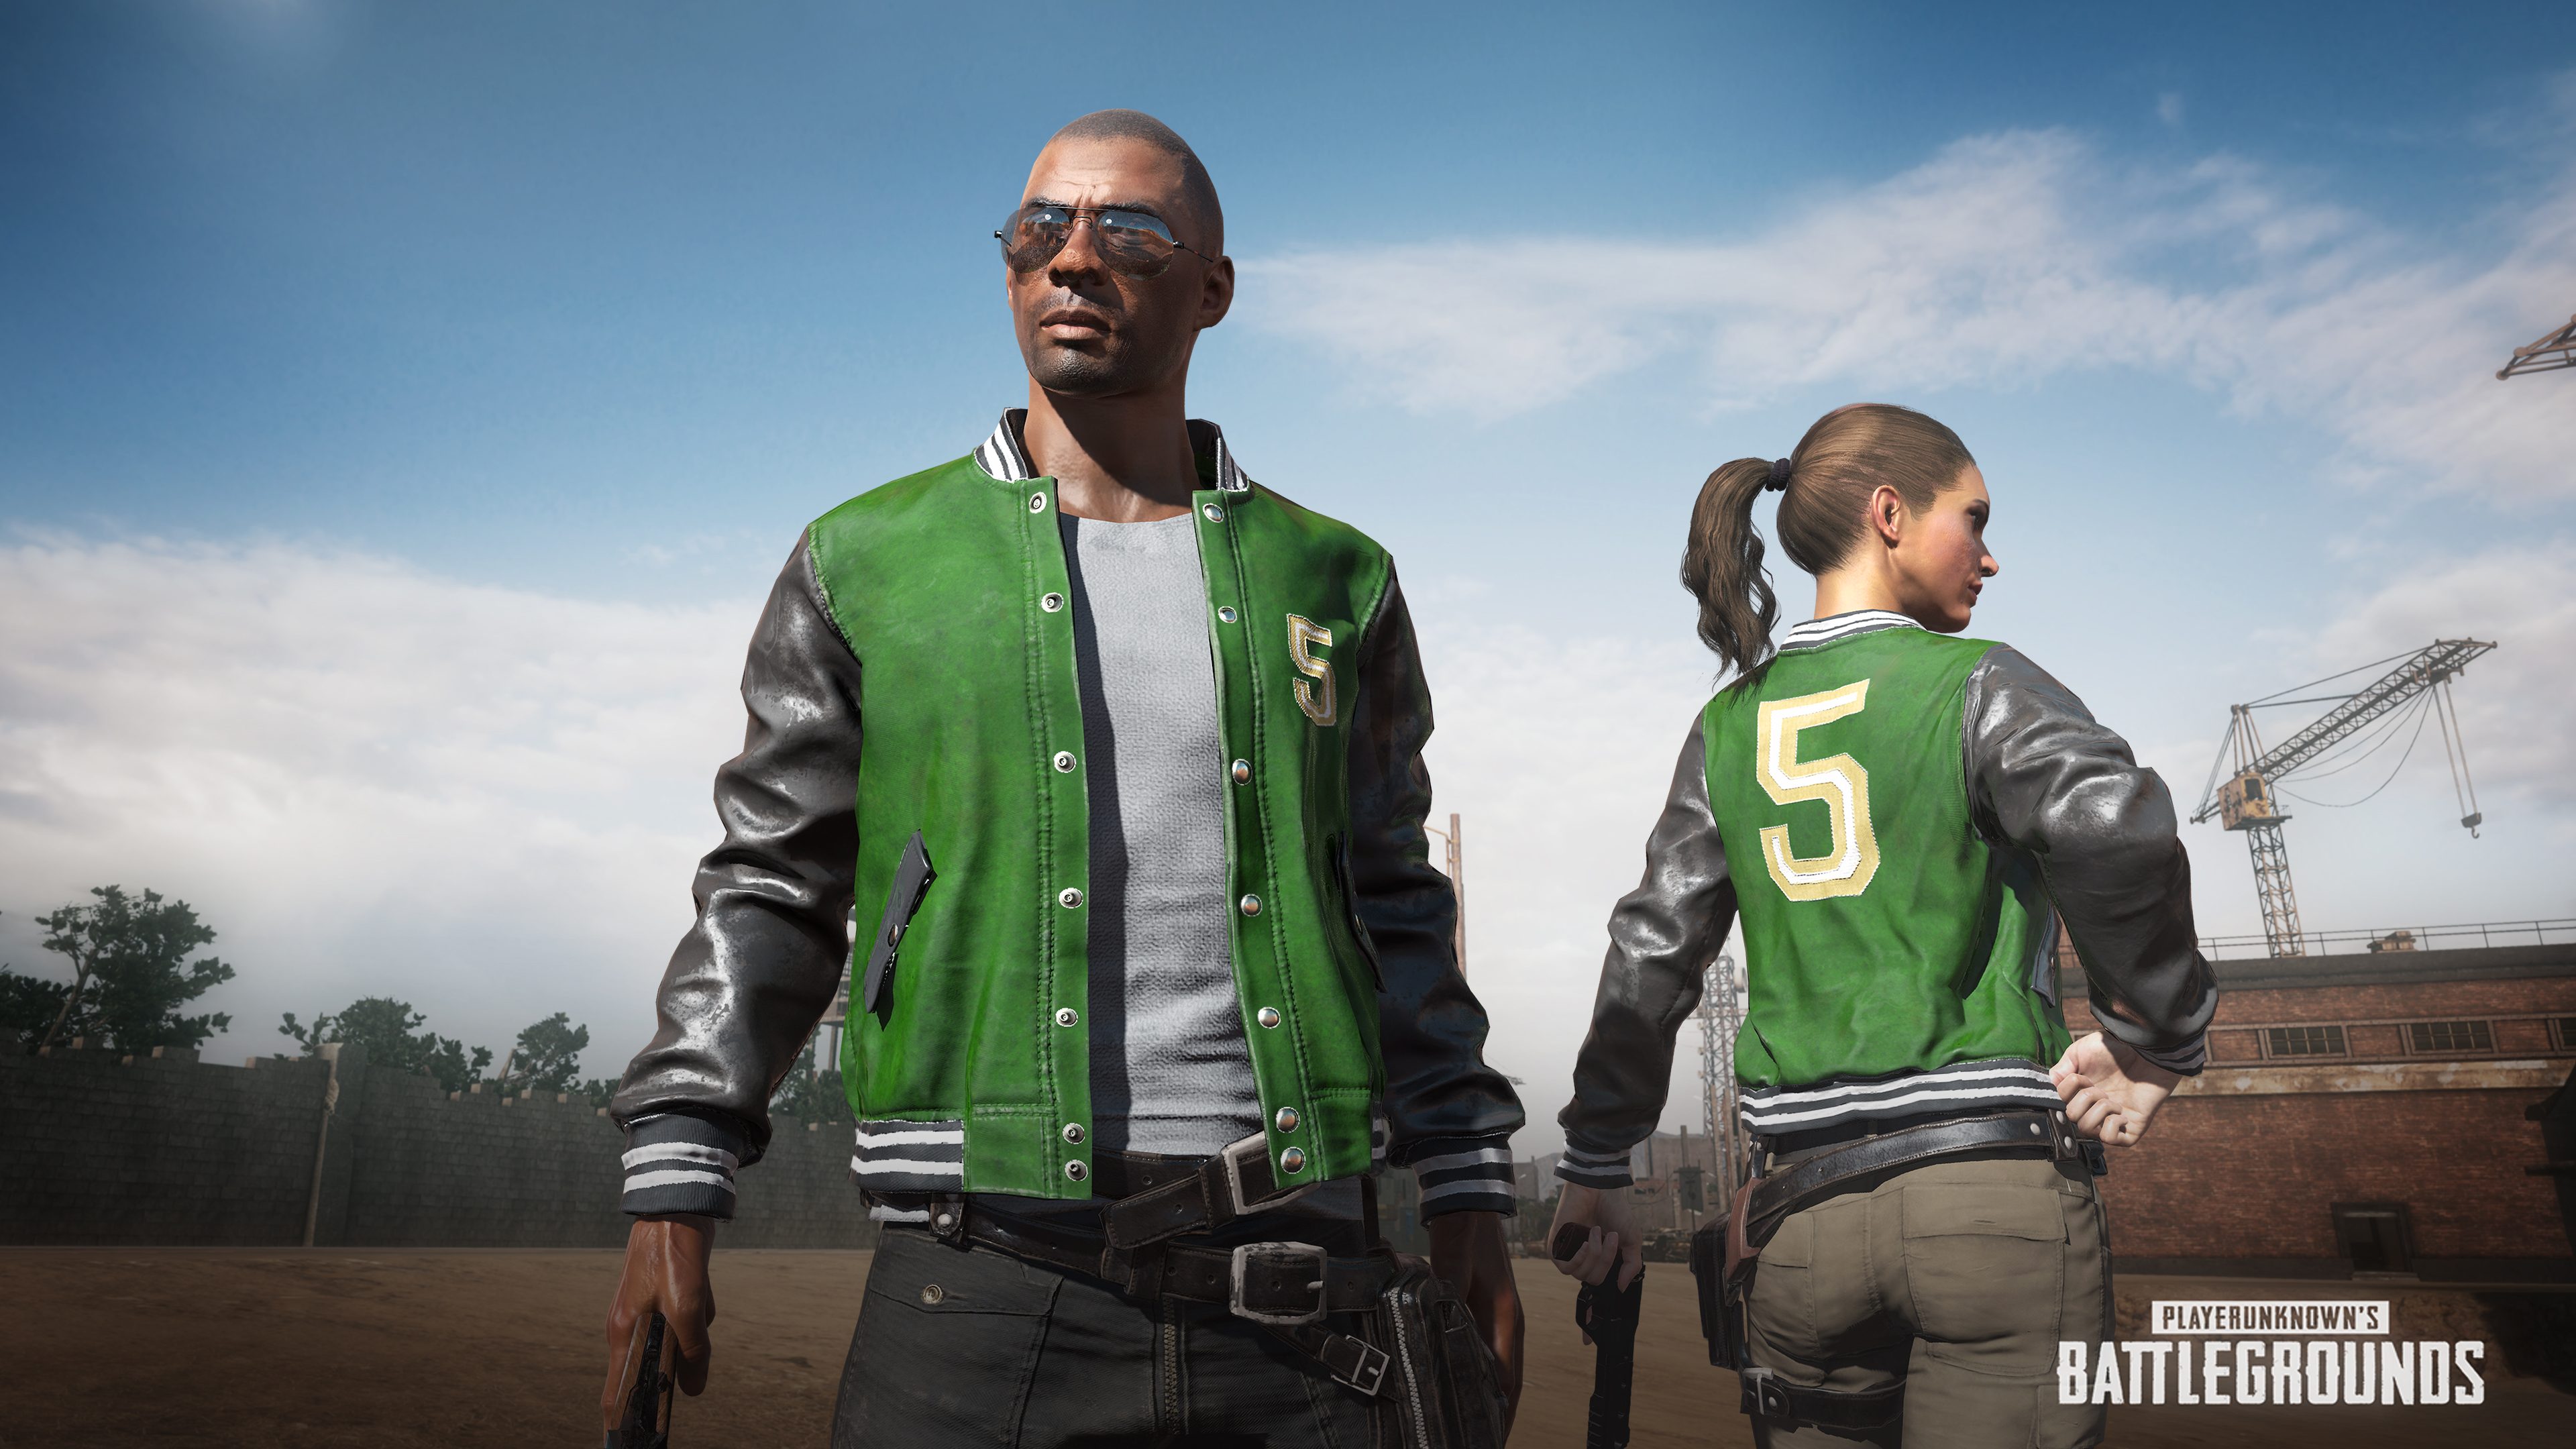 Top 13 Pubg Wallpapers In Full Hd For Pc And Phone: PUBG Xbox One Surpasses 5 Million Players In Less Than 3